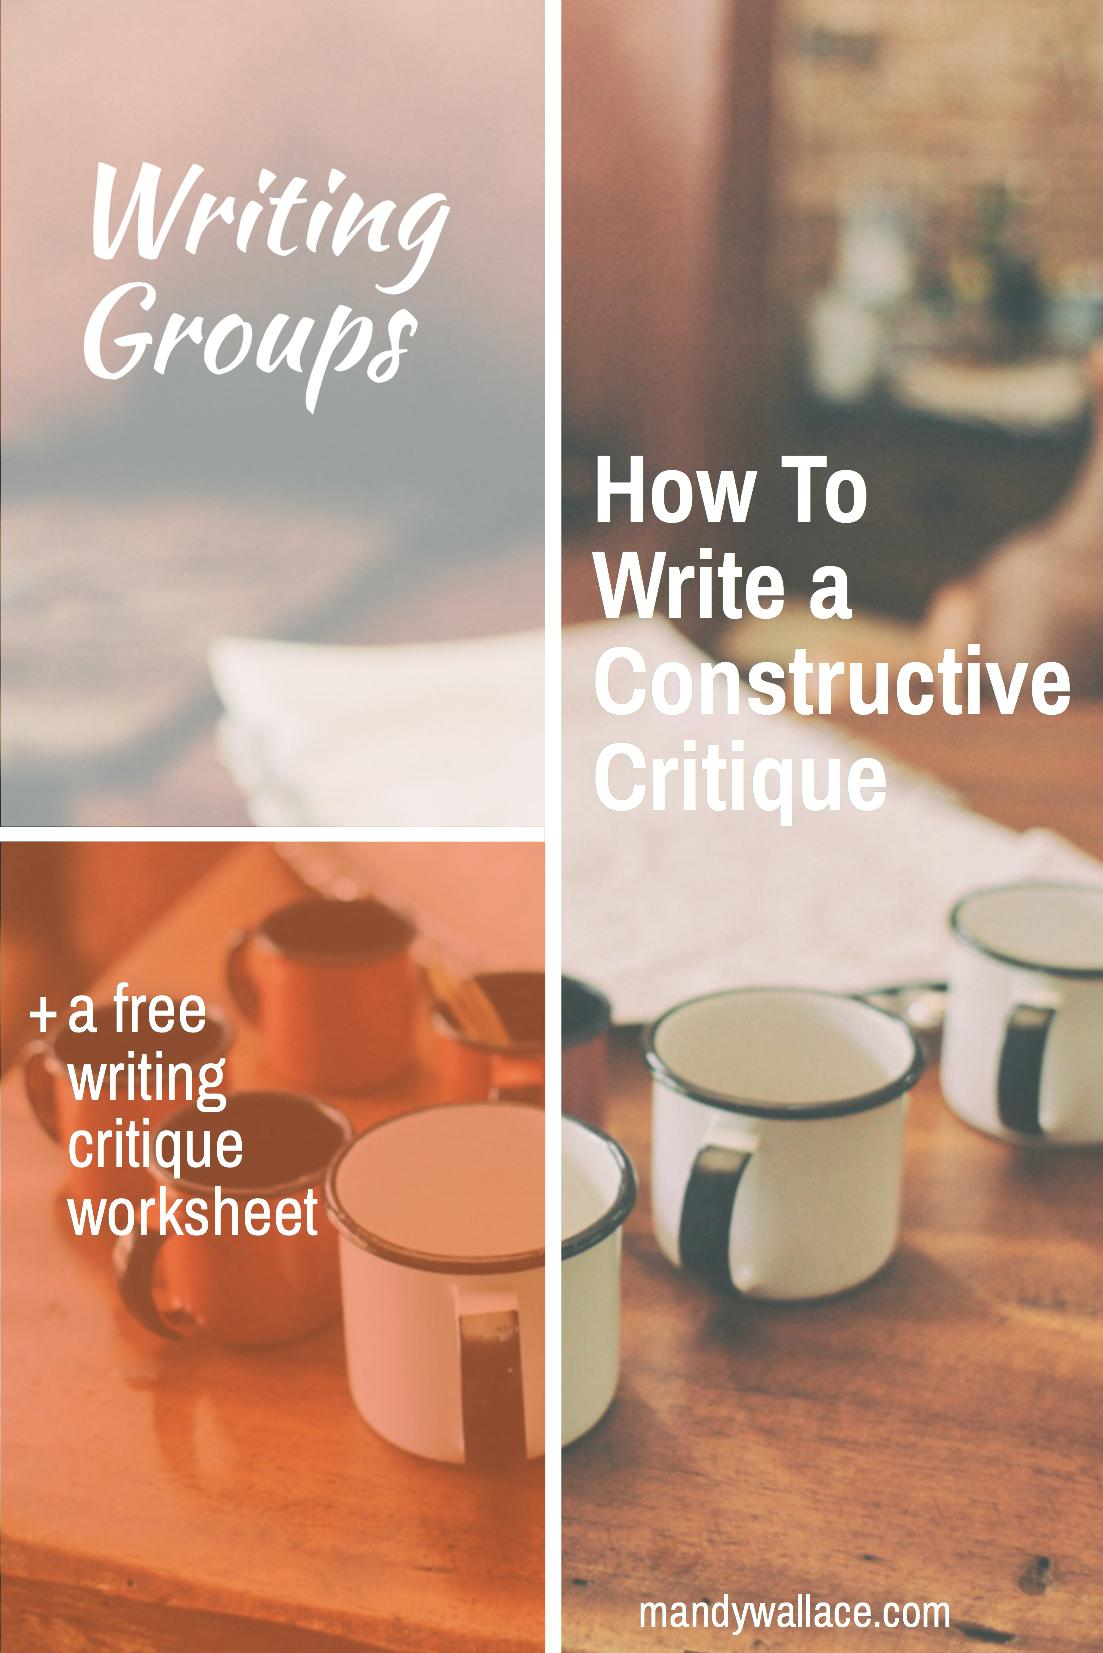 creative writing critique groups Free online writing communities and writing groups for fiction, nonfiction, poetry, novels, books, short short stories, and every other type of creative writing.